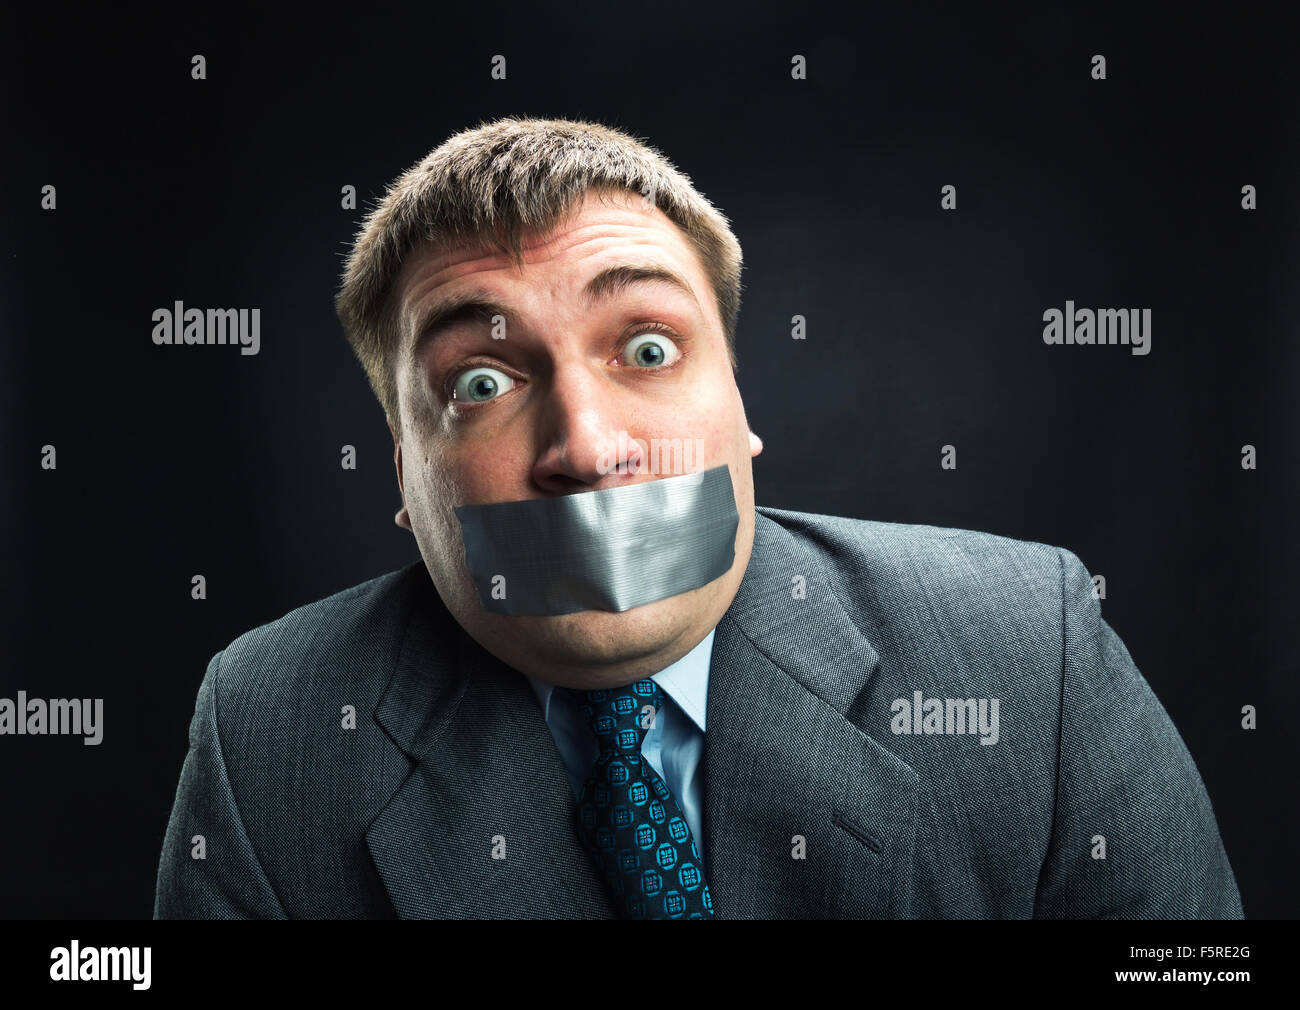 Surprised man with mouth covered by masking tape preventing speech, studio shoot - Stock Image